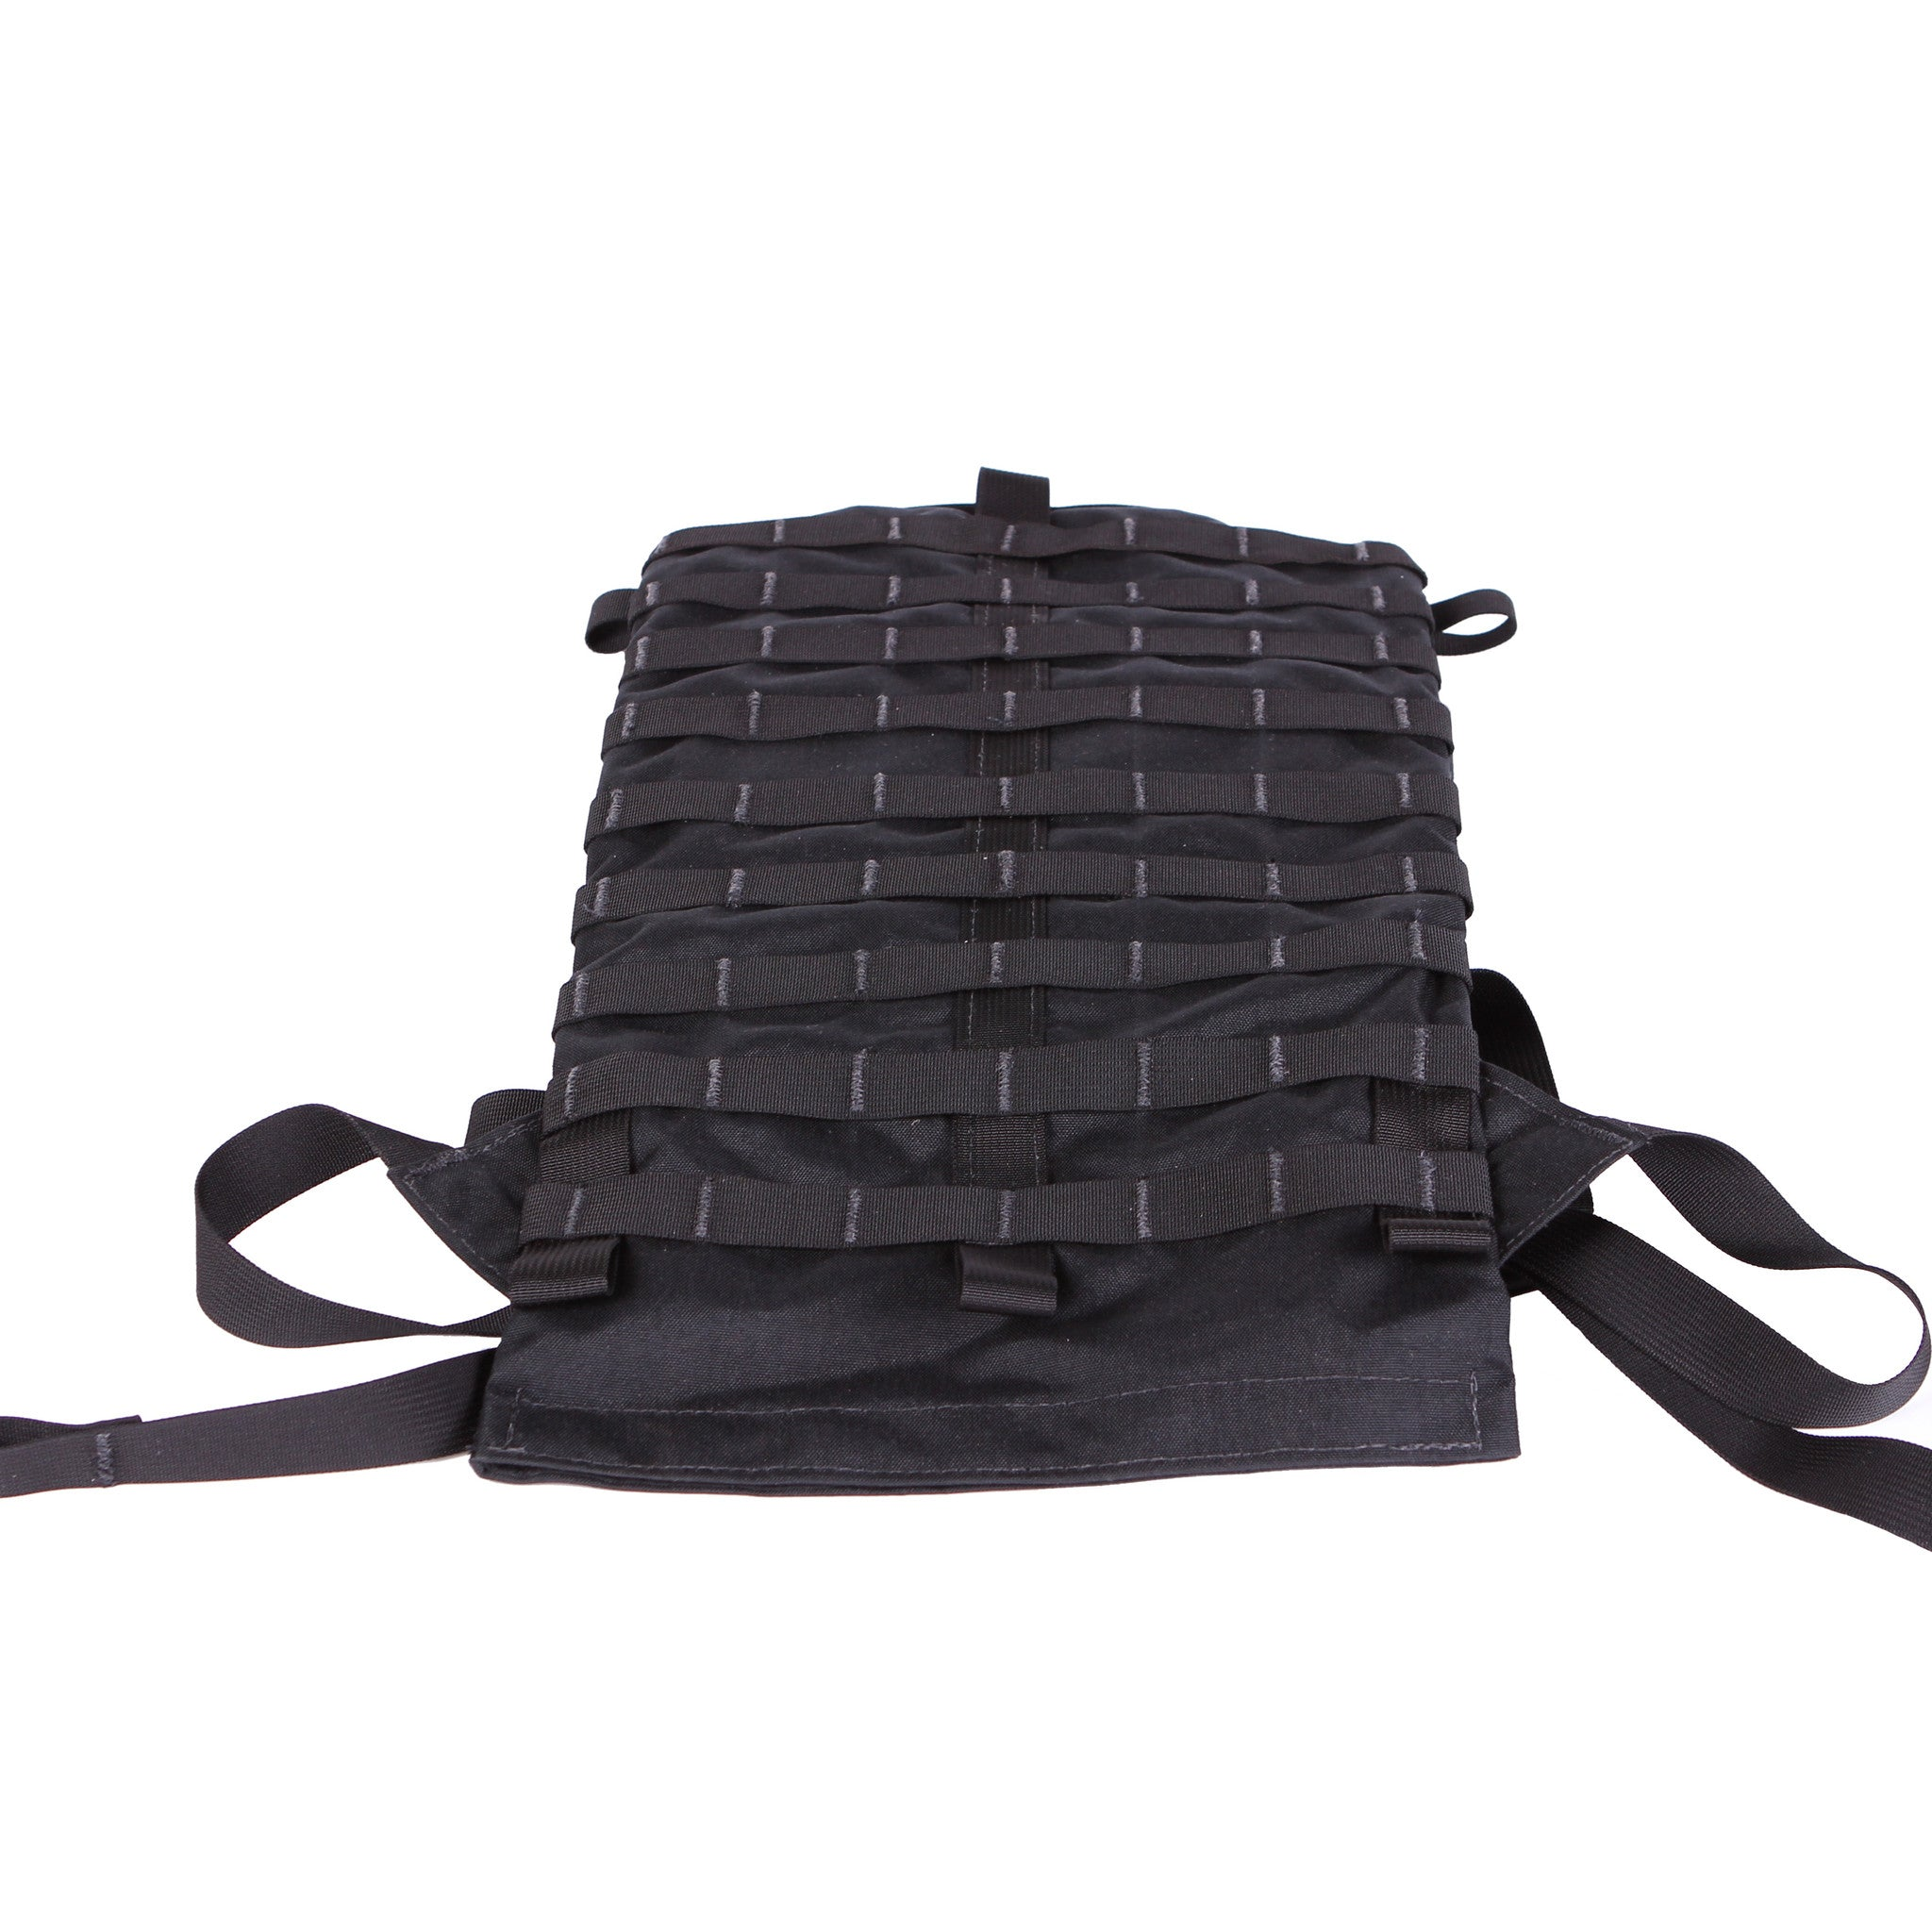 MPC  Breacher (Multi Purpose Carrier)